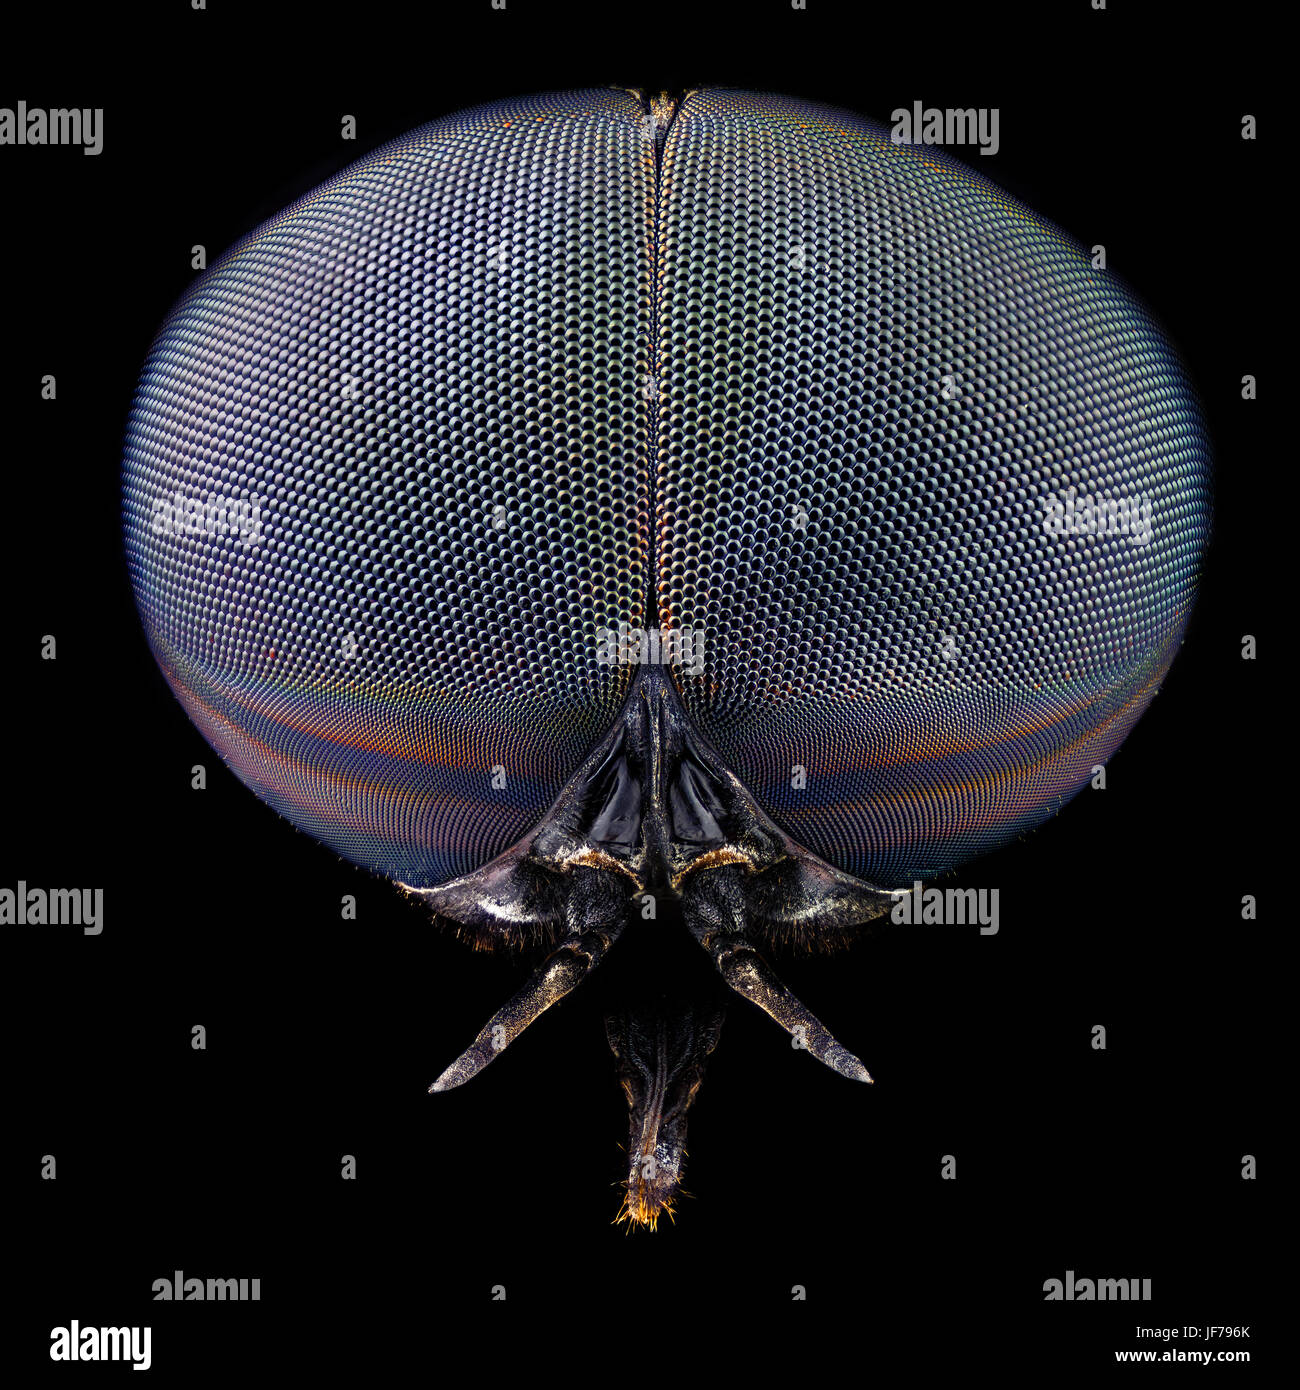 Full frontal portrait of a black horse fly magnified through a microscope objective - Stock Image